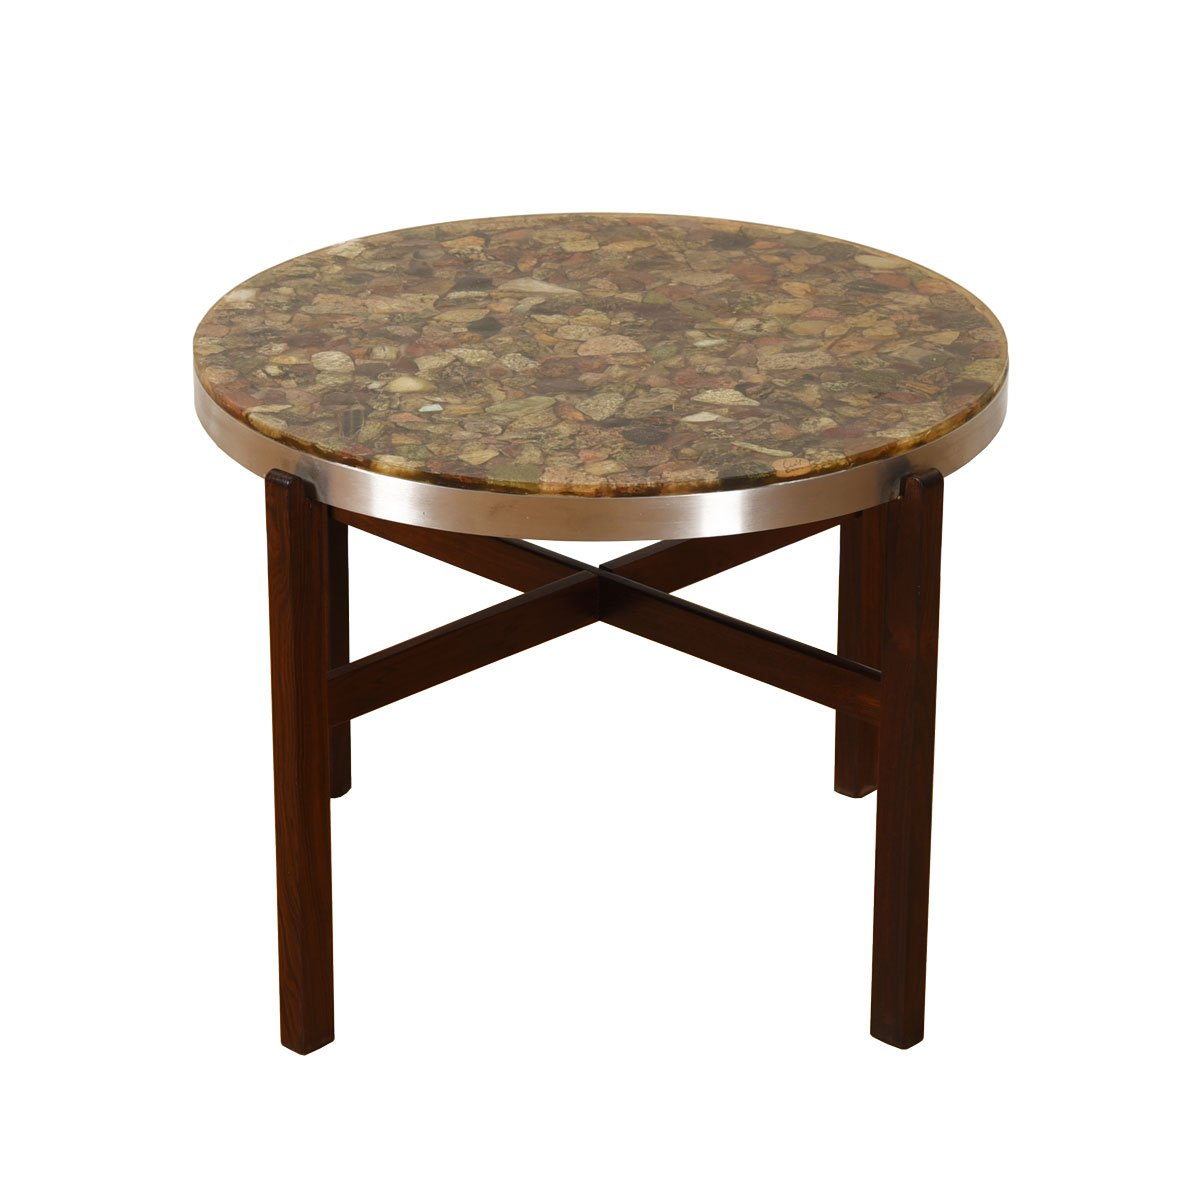 Round Decorator Accent / Small Coffee Table.